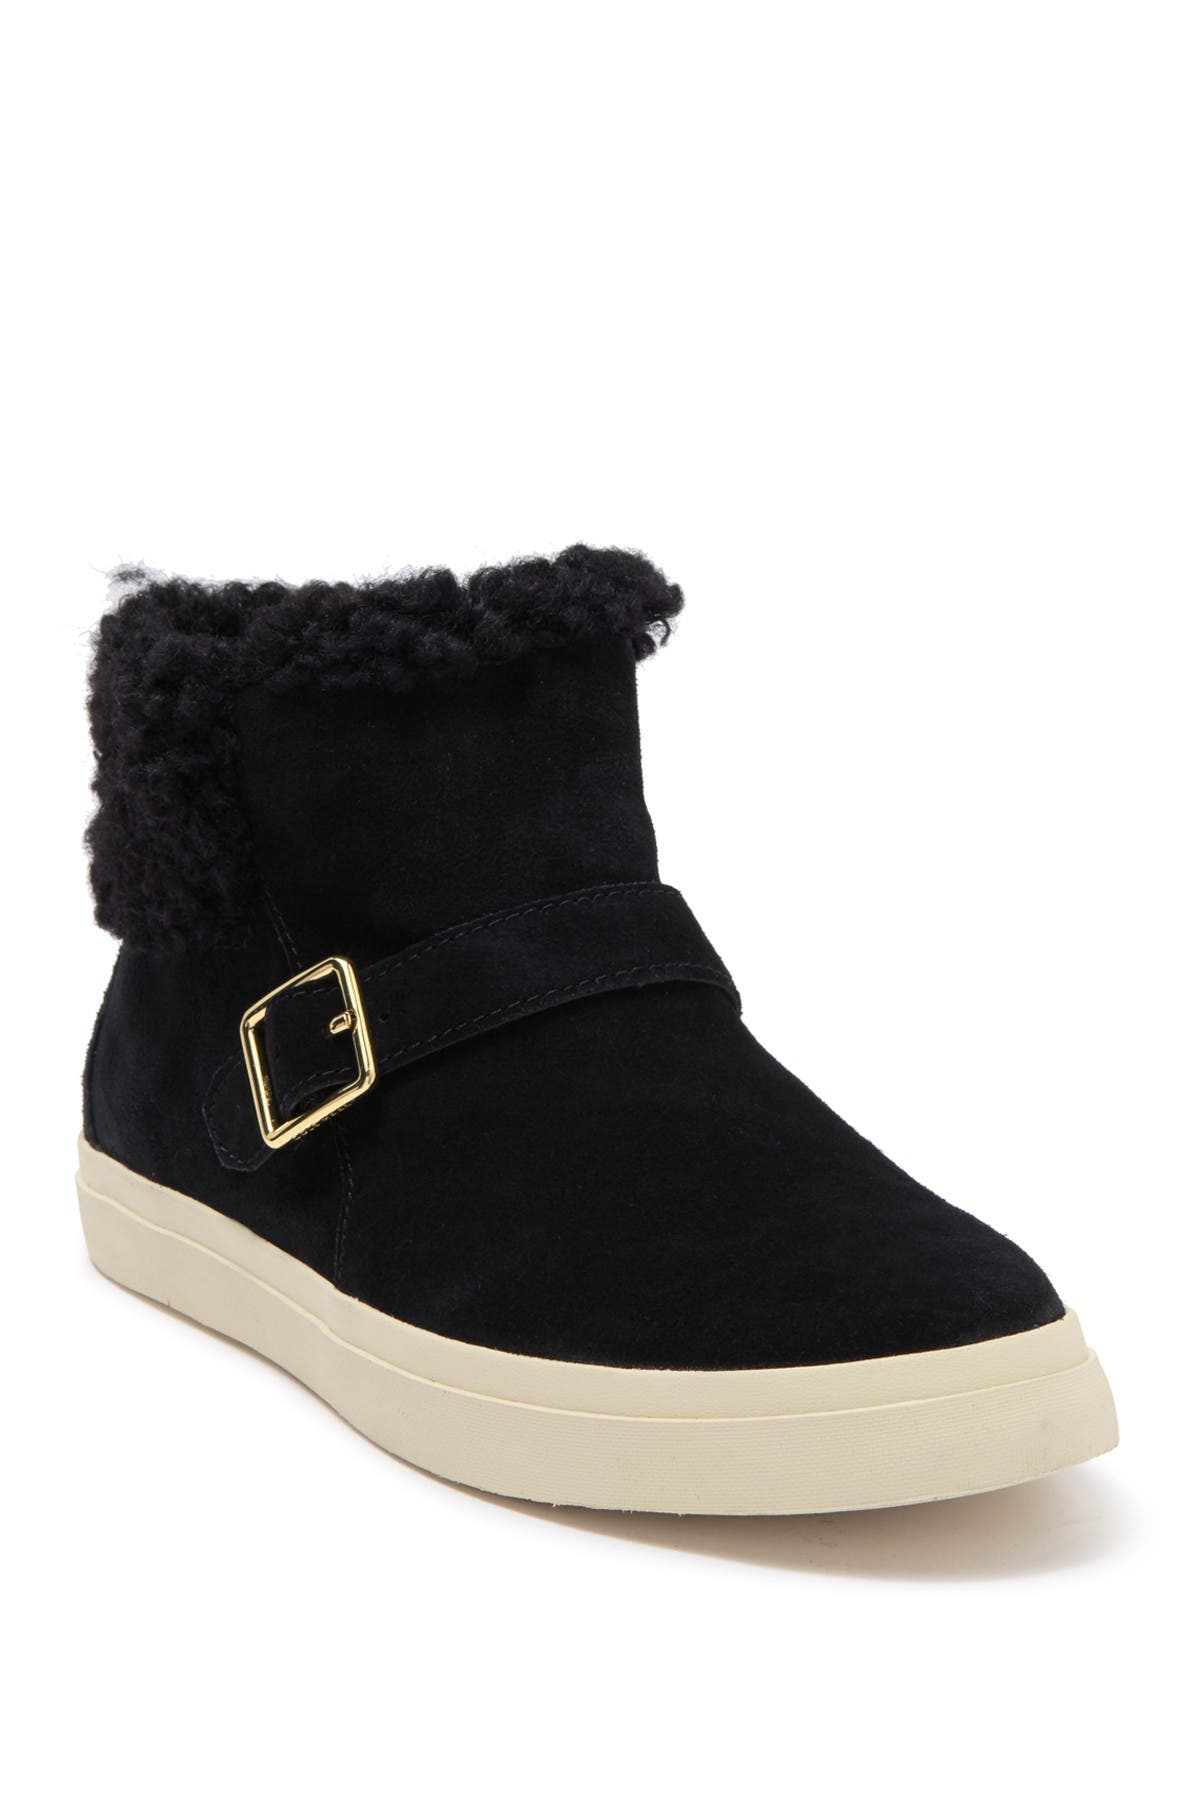 Image of Cole Haan Nantucket Cozy Ankle Boot